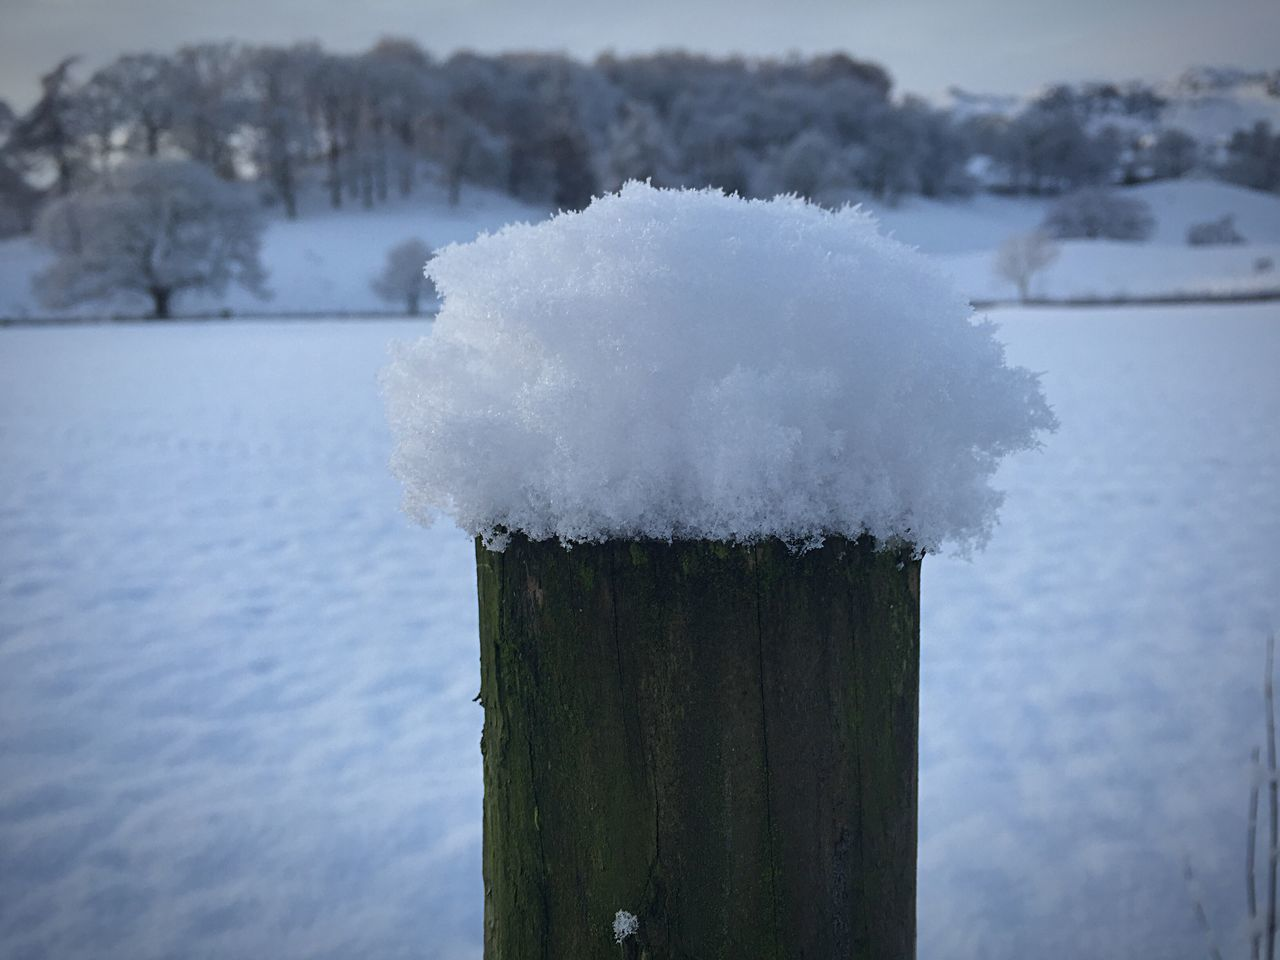 It's just the little things that make life beautiful Grassmere The Lake District  Snow Beautiful Nature